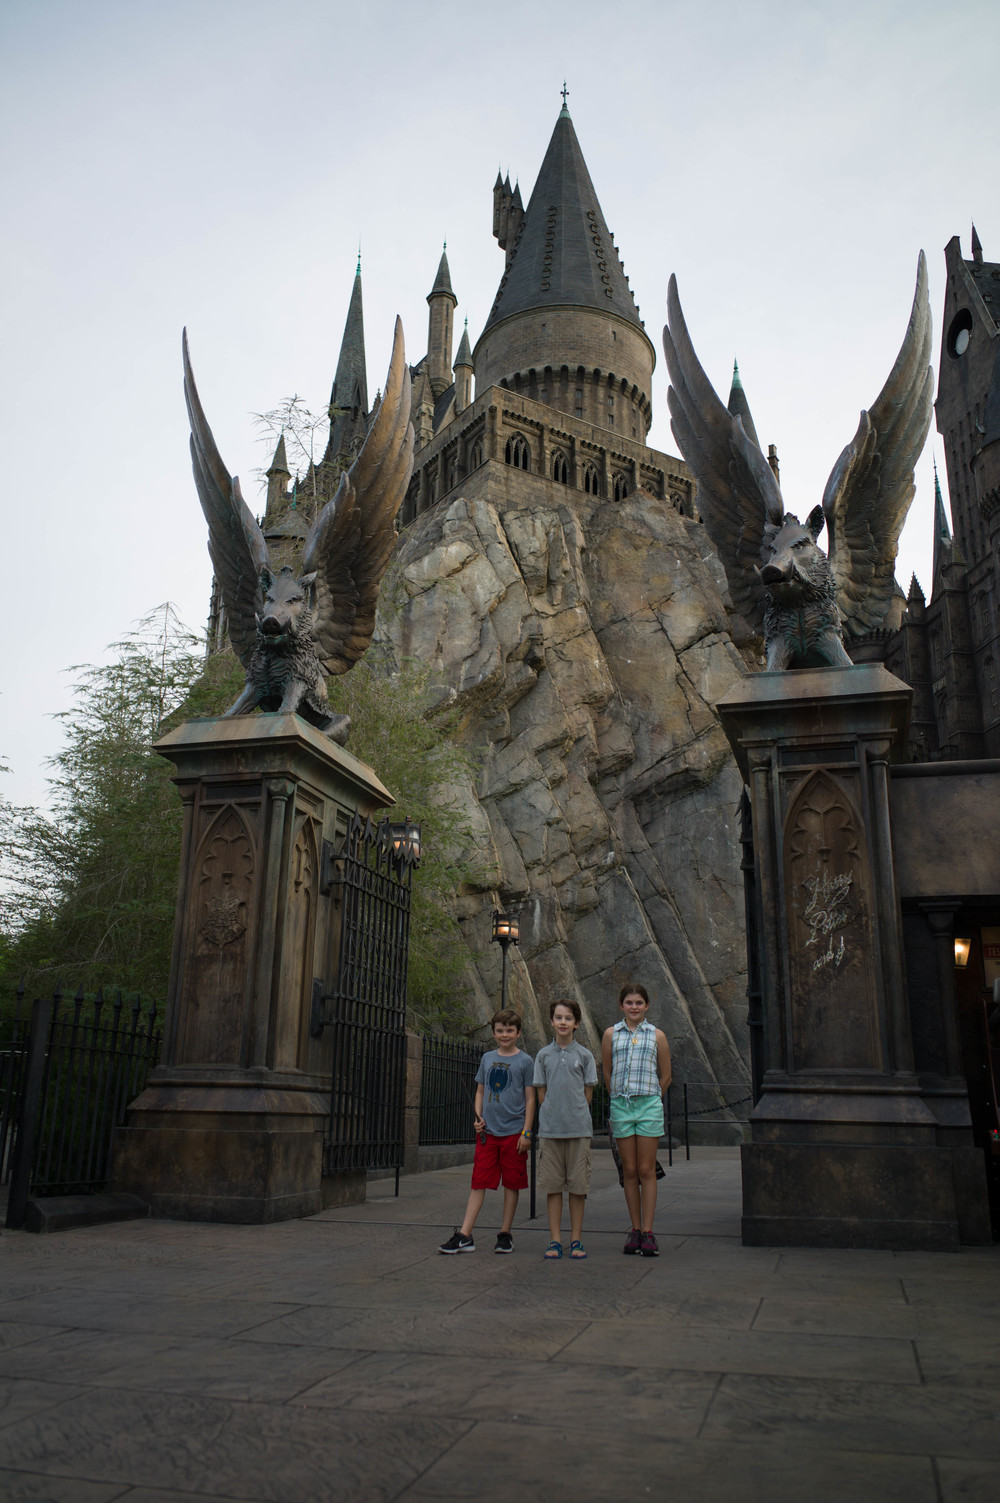 Hogwarts Castle Entrance